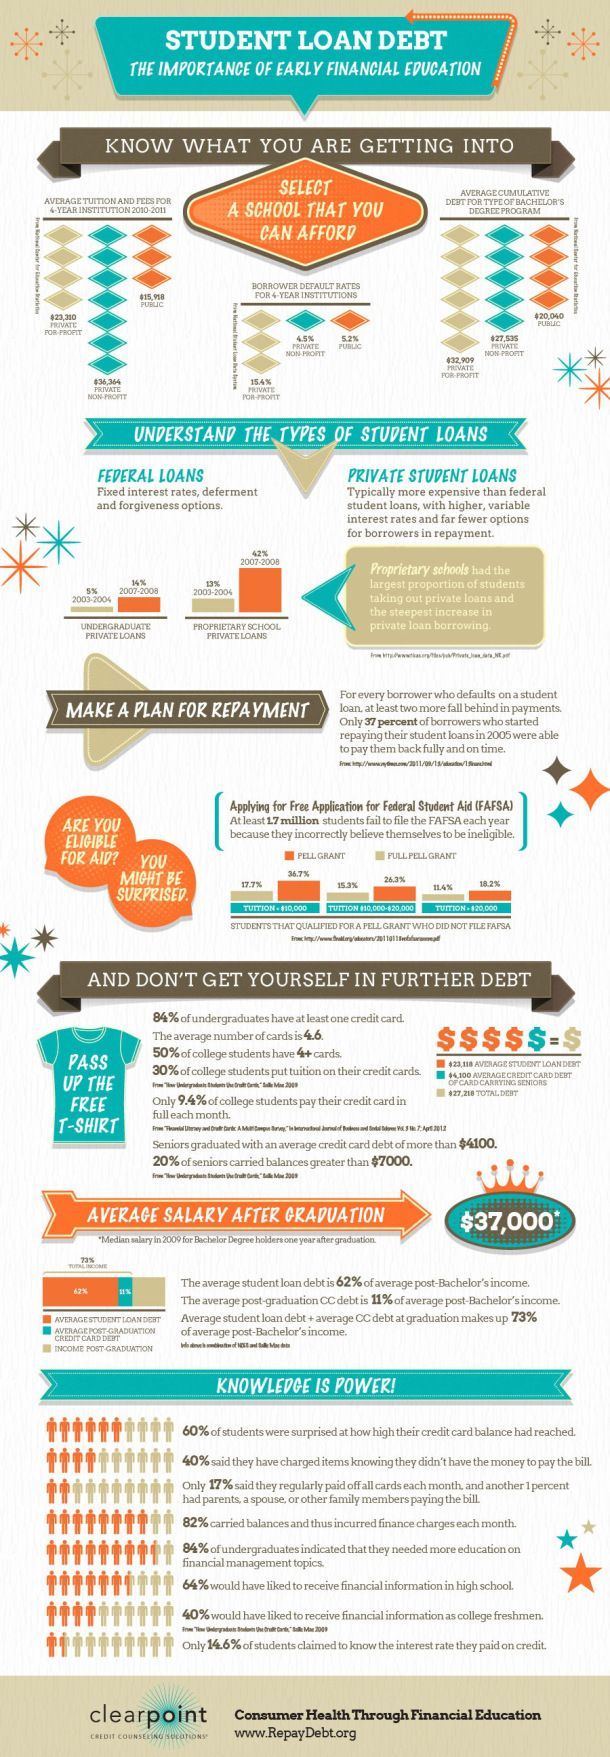 Student Loan Debt: The Importance Of Early Financial Education [INFOGRAPHIC]